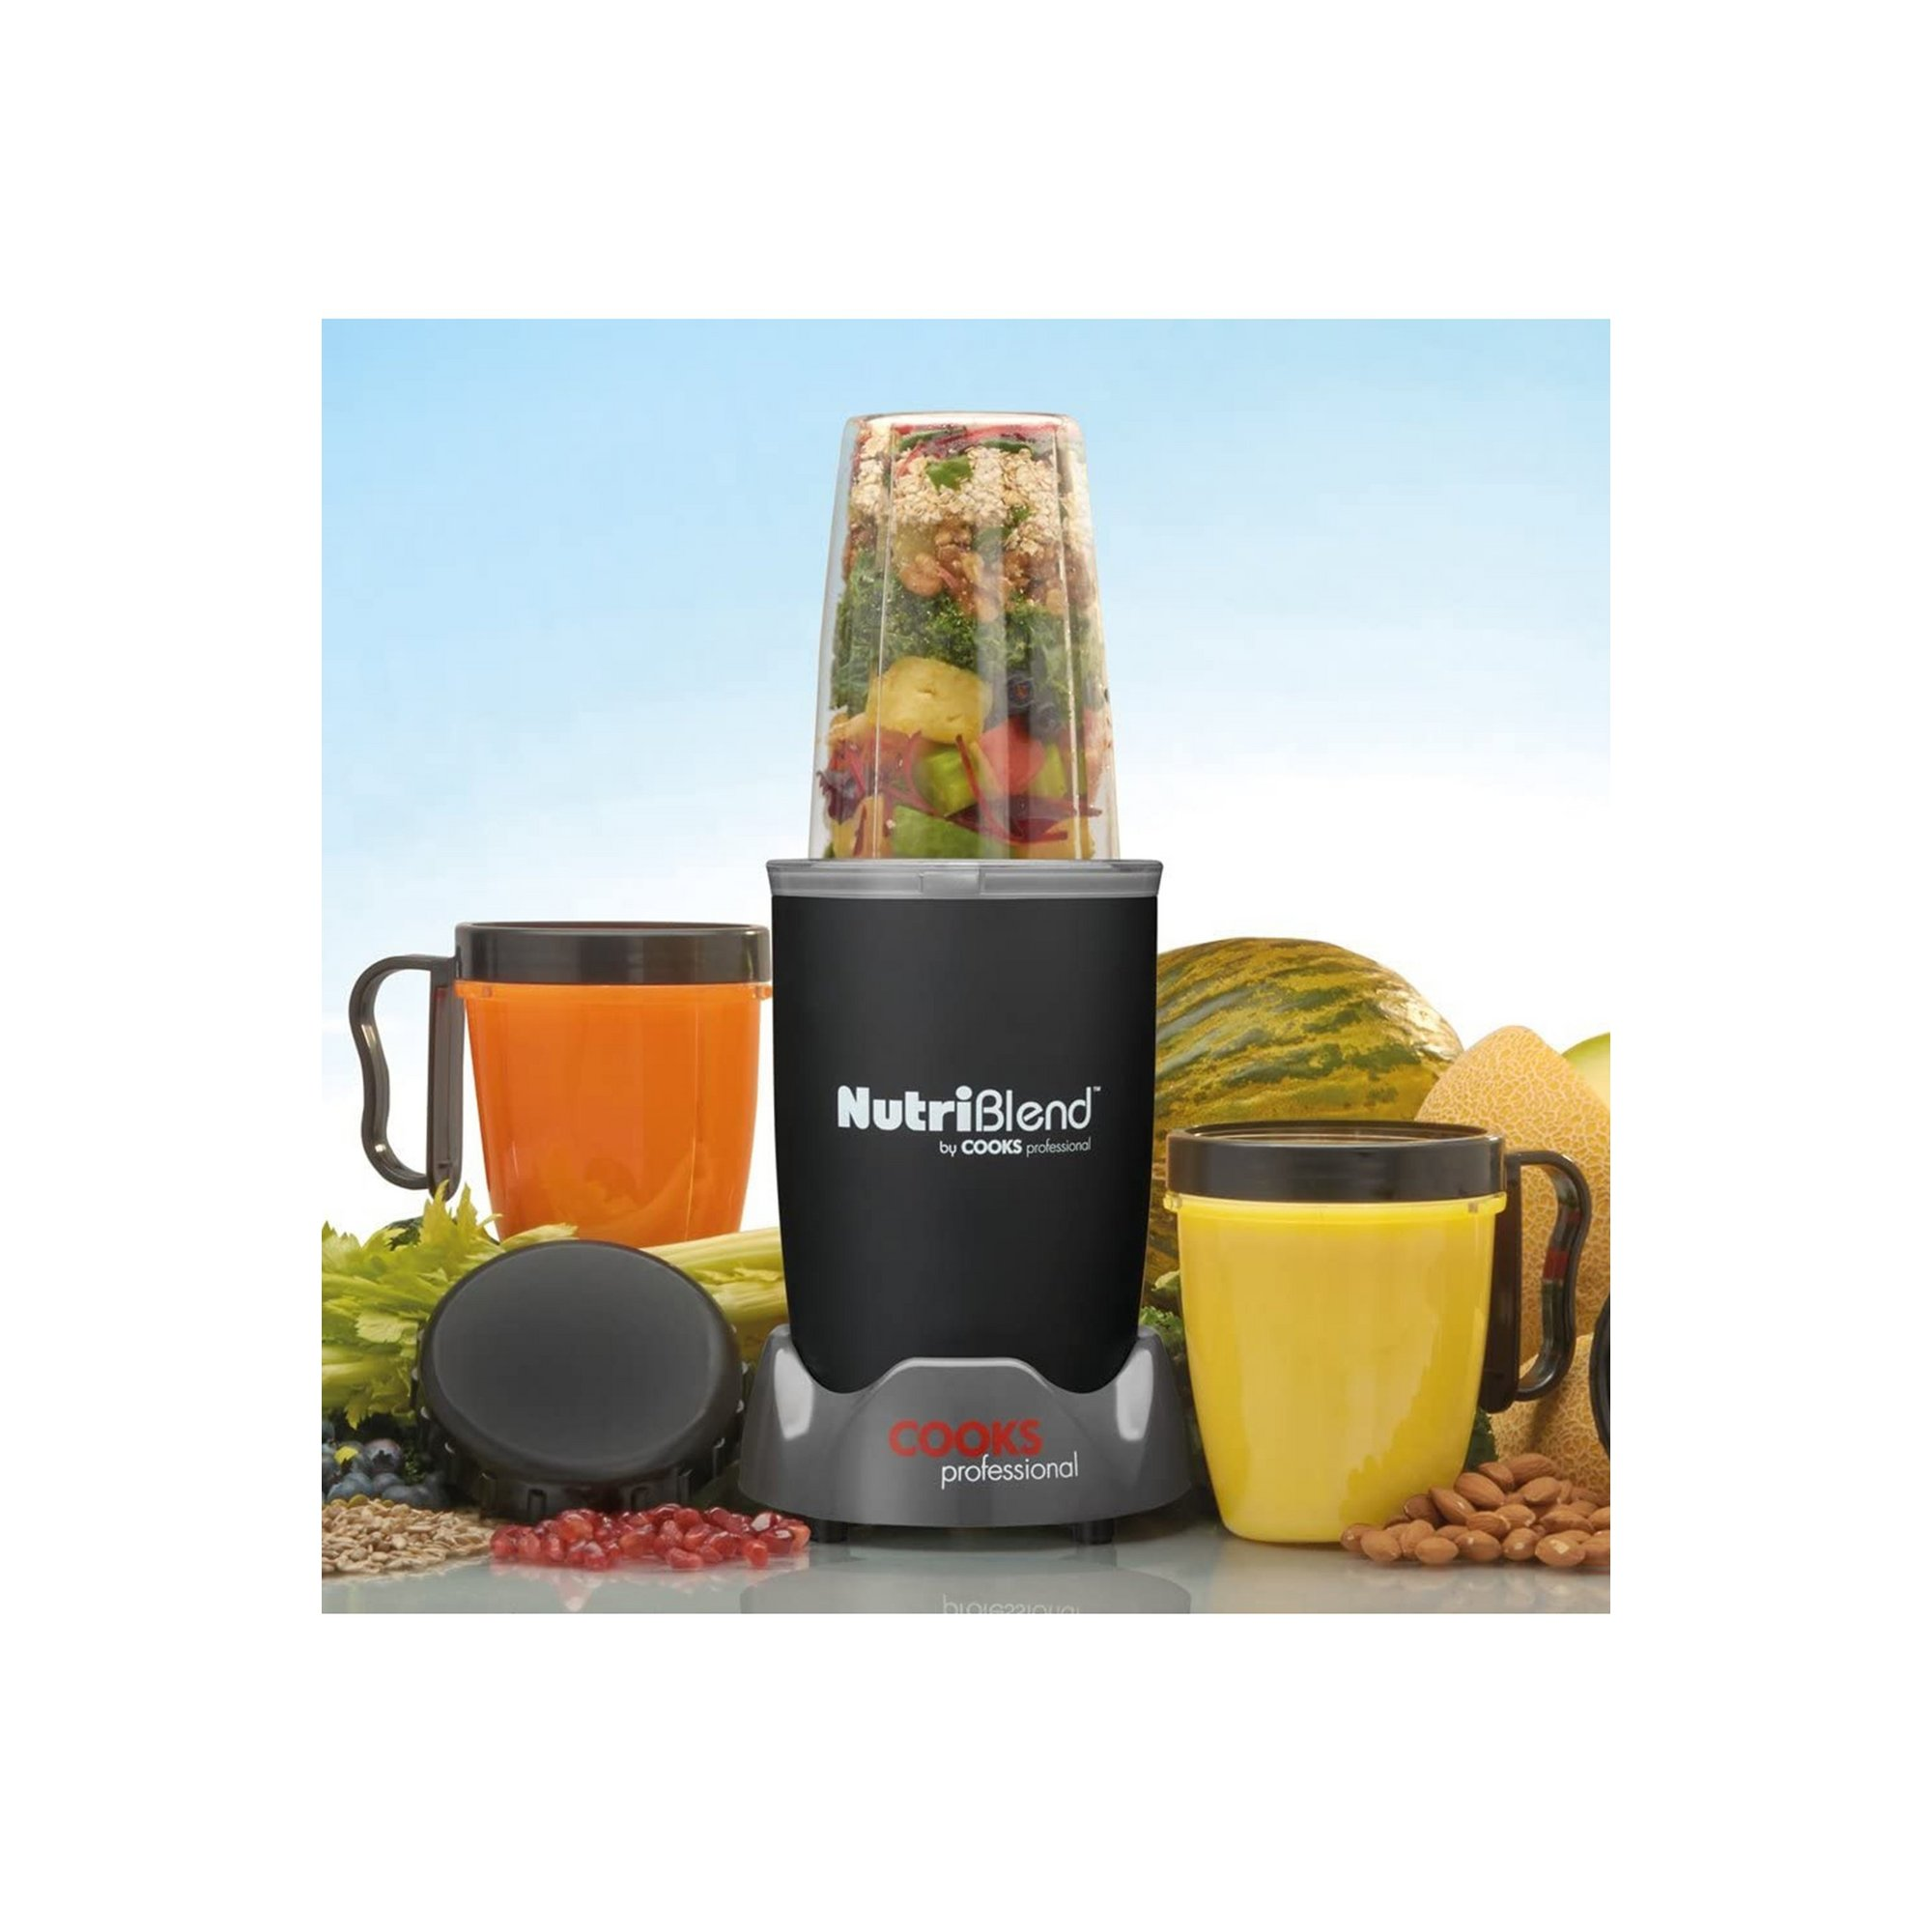 Image of Cooks Professional - Nutriblend 700W Blender